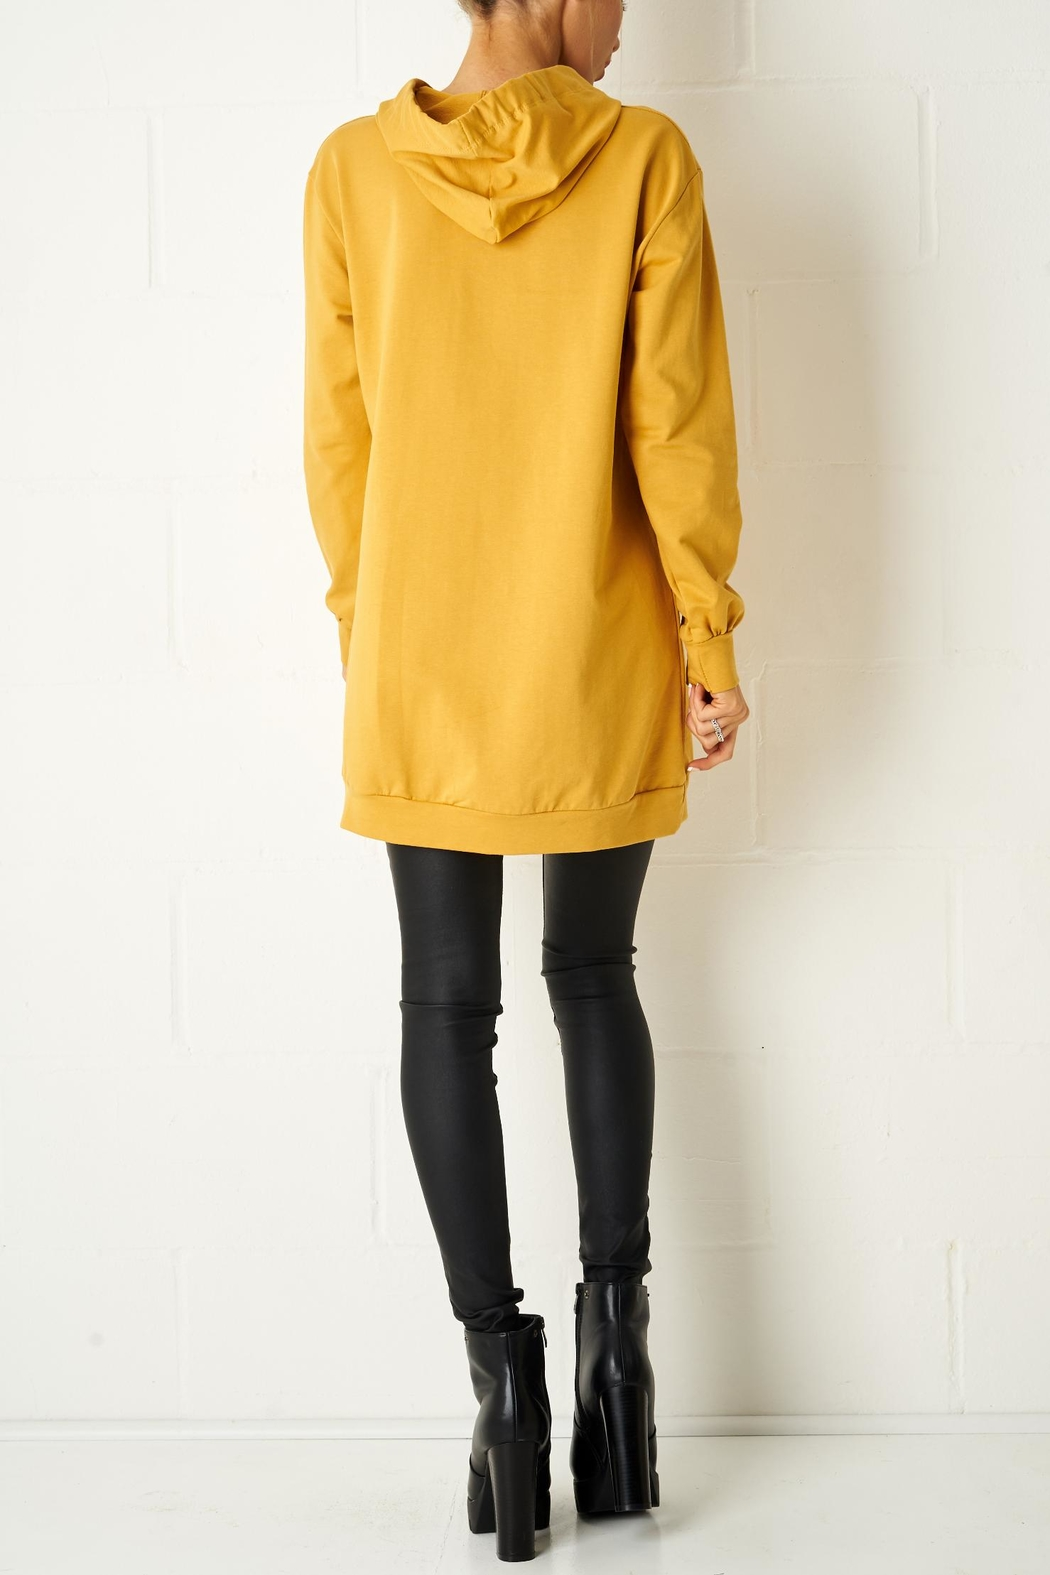 frontrow Mustard Oversized Top - Side Cropped Image